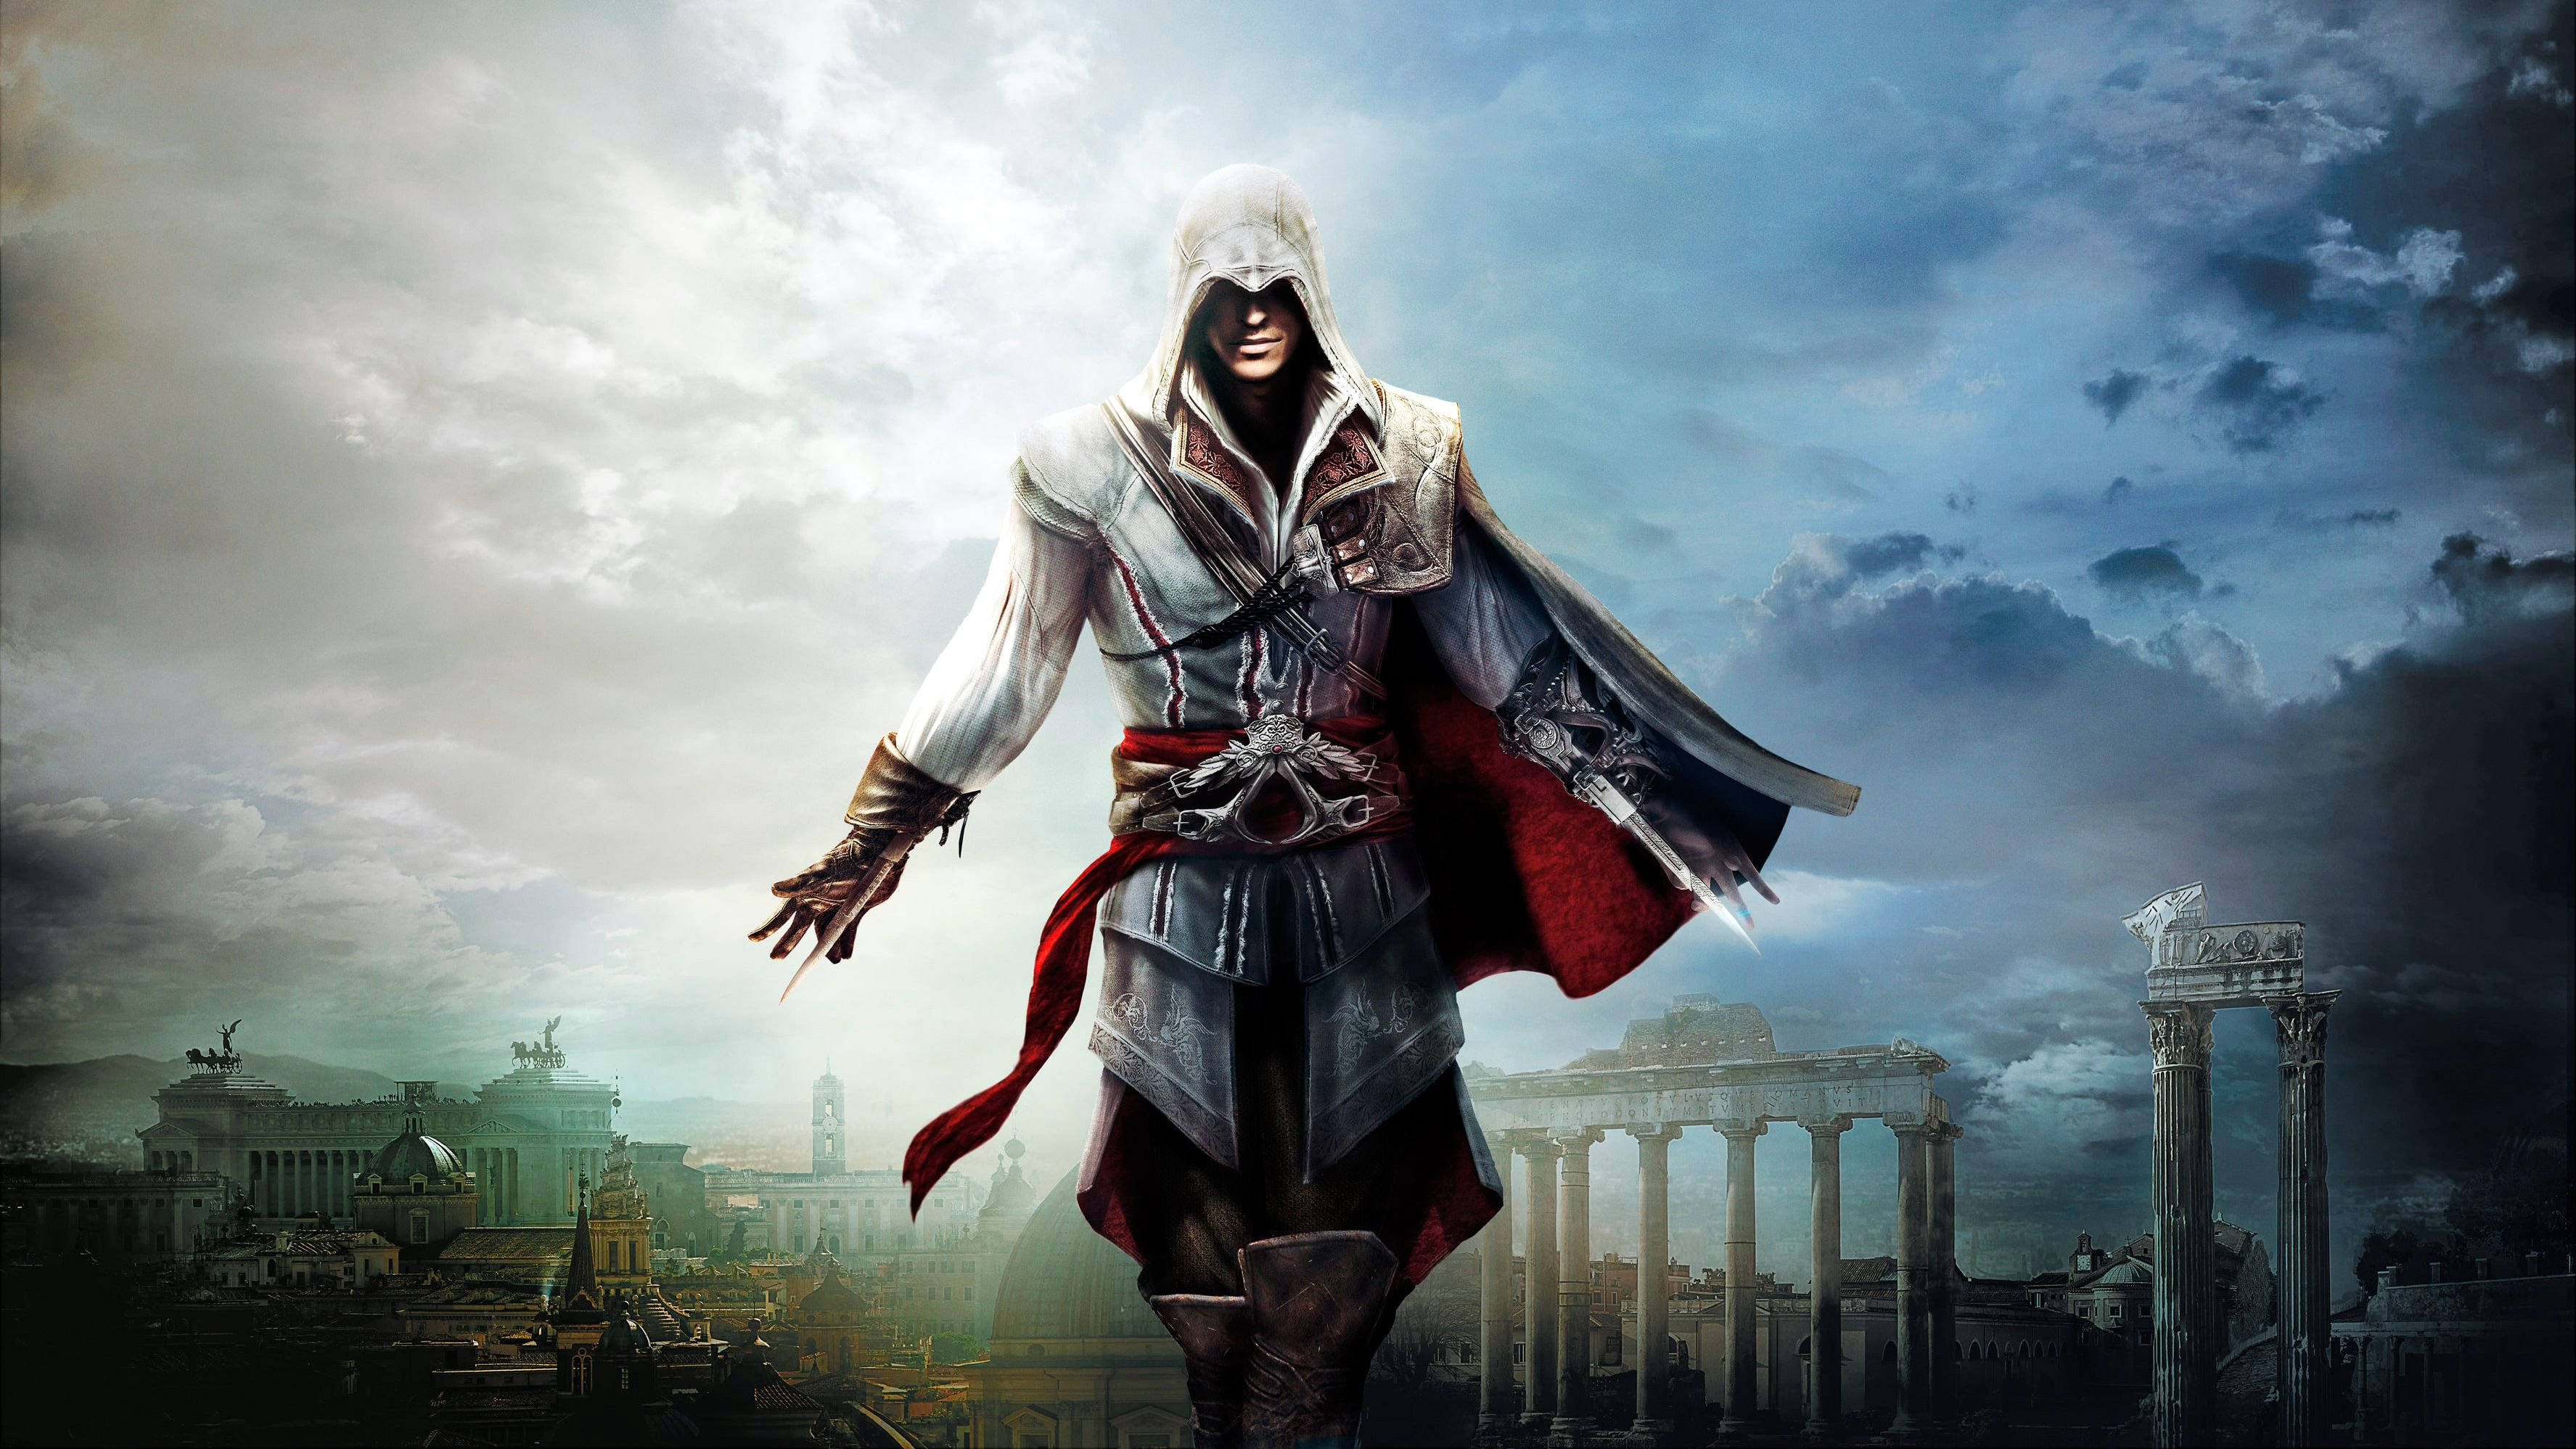 4k Wallpaper Assassin S Creed 3550x1997 High Resolution Igry